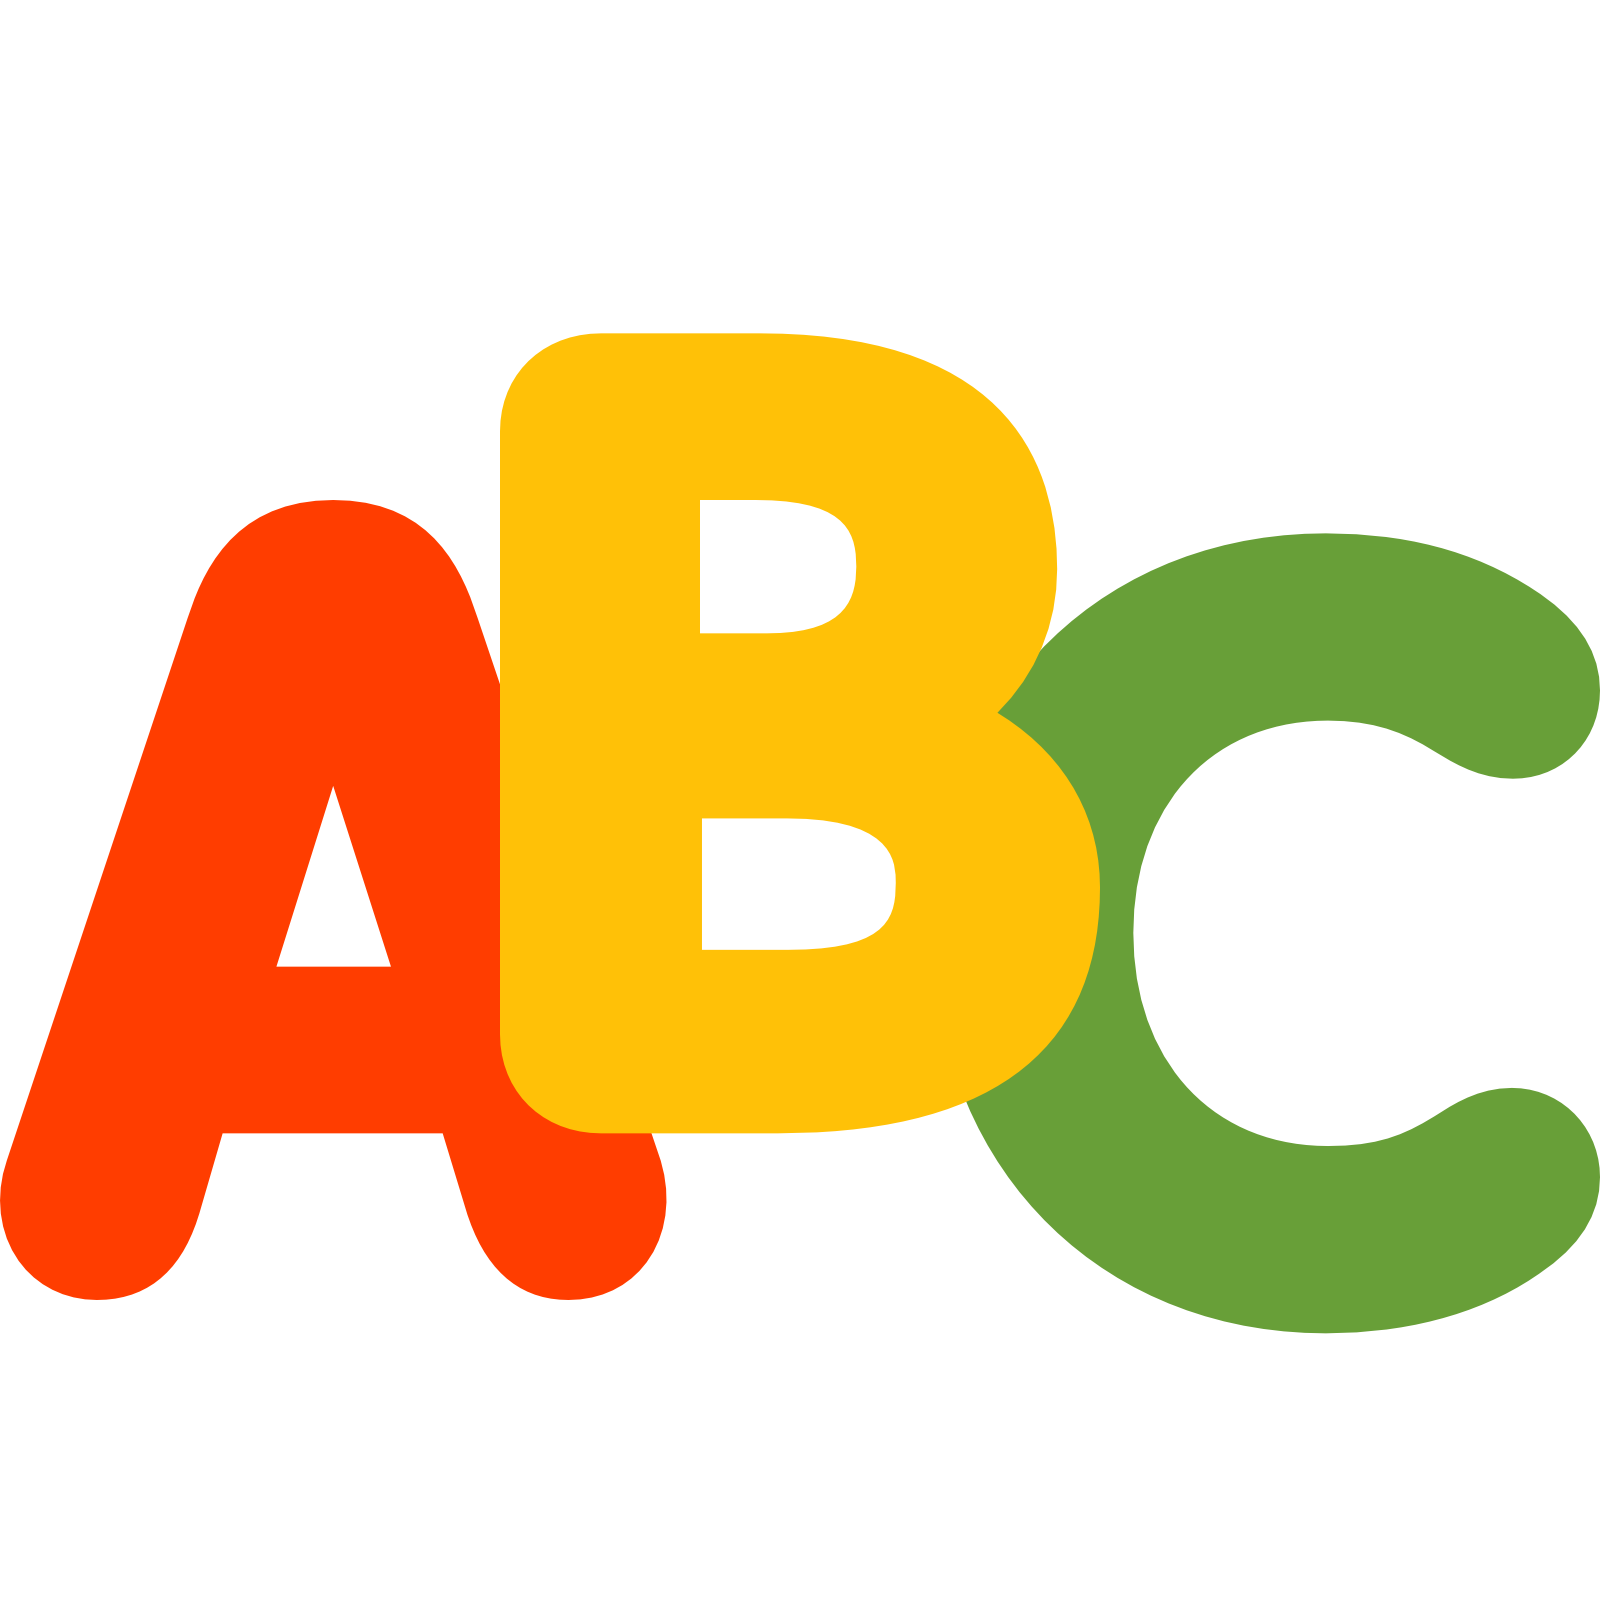 Abc PNG - 35188